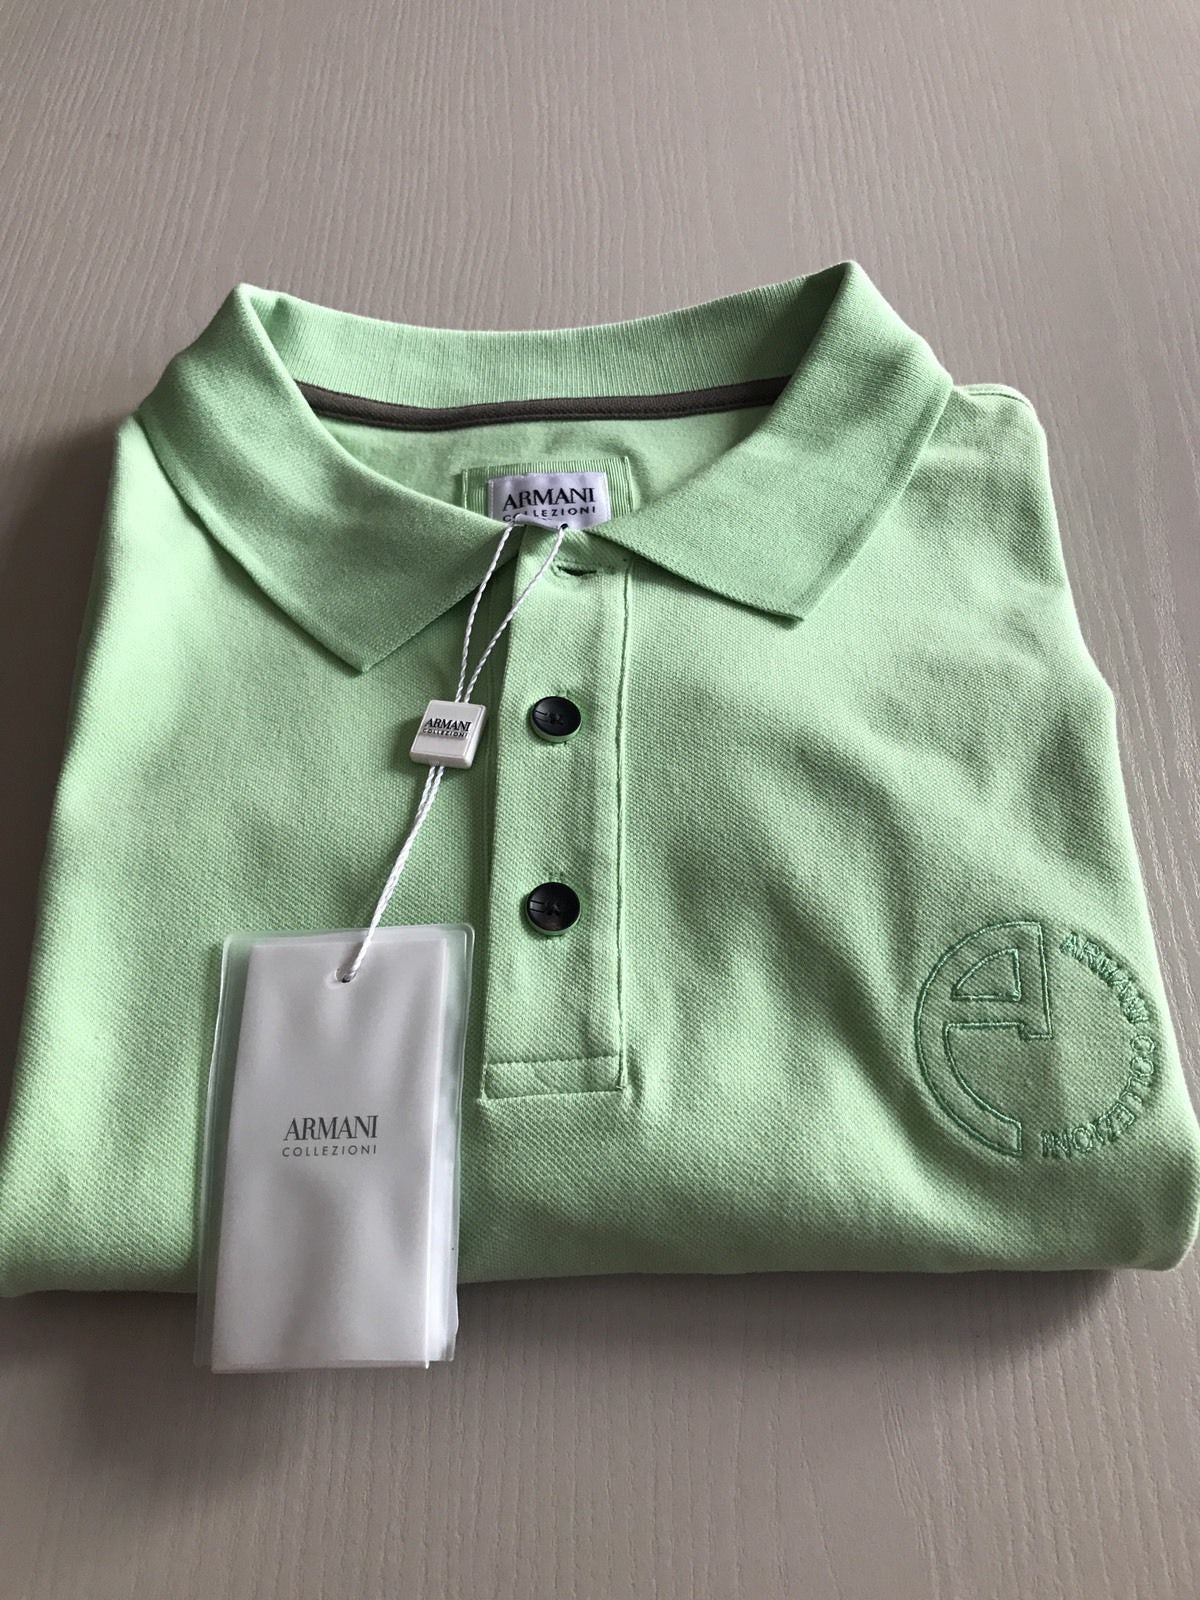 New $450 Armani Collezioni Men's Short Sleeve Polo Shirt LT Green XL US